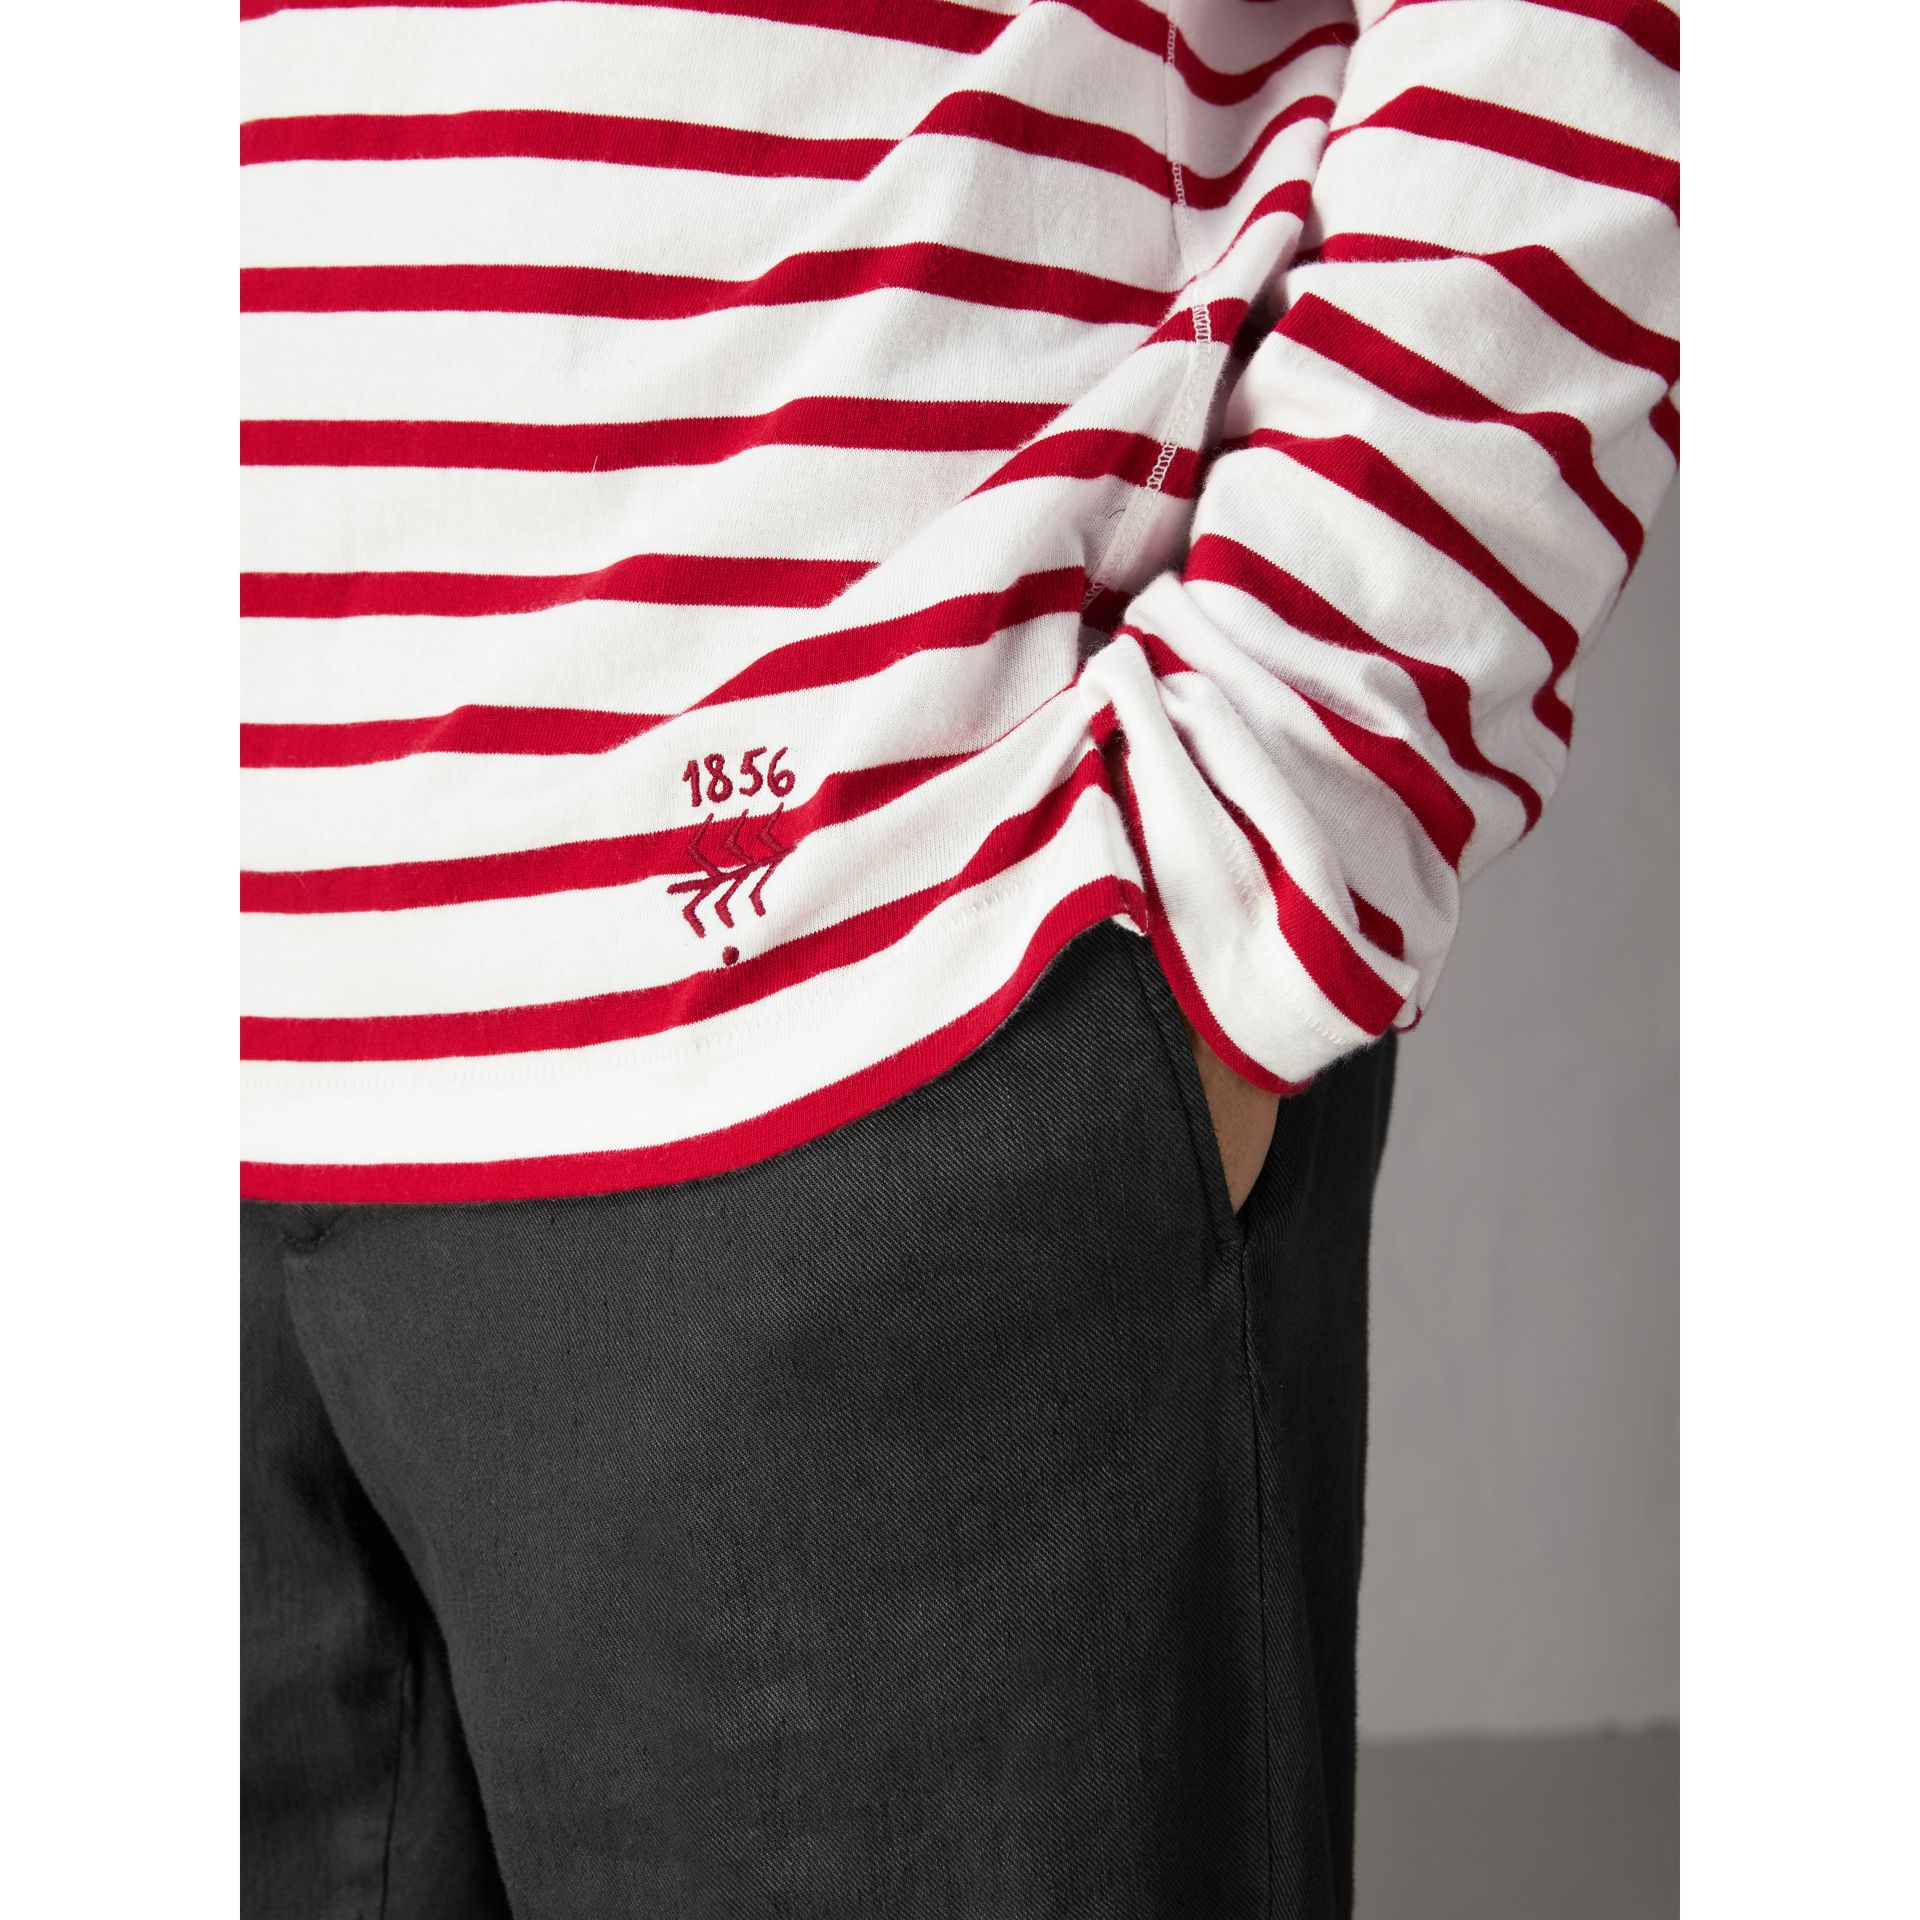 Breton Stripe Cotton Jersey Top in Red/white - Men | Burberry - gallery image 1